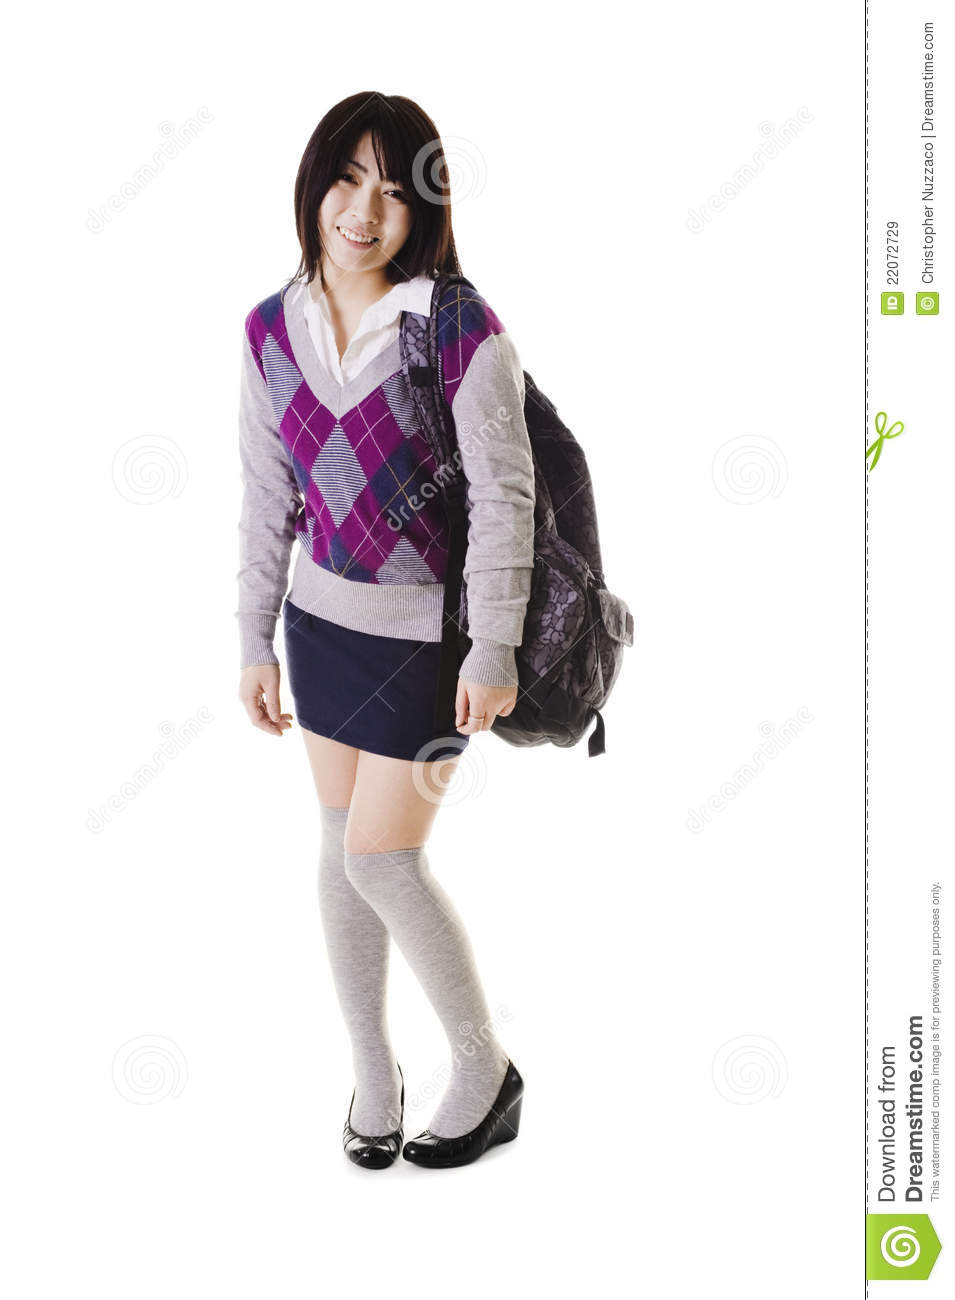 Images of chines school girls